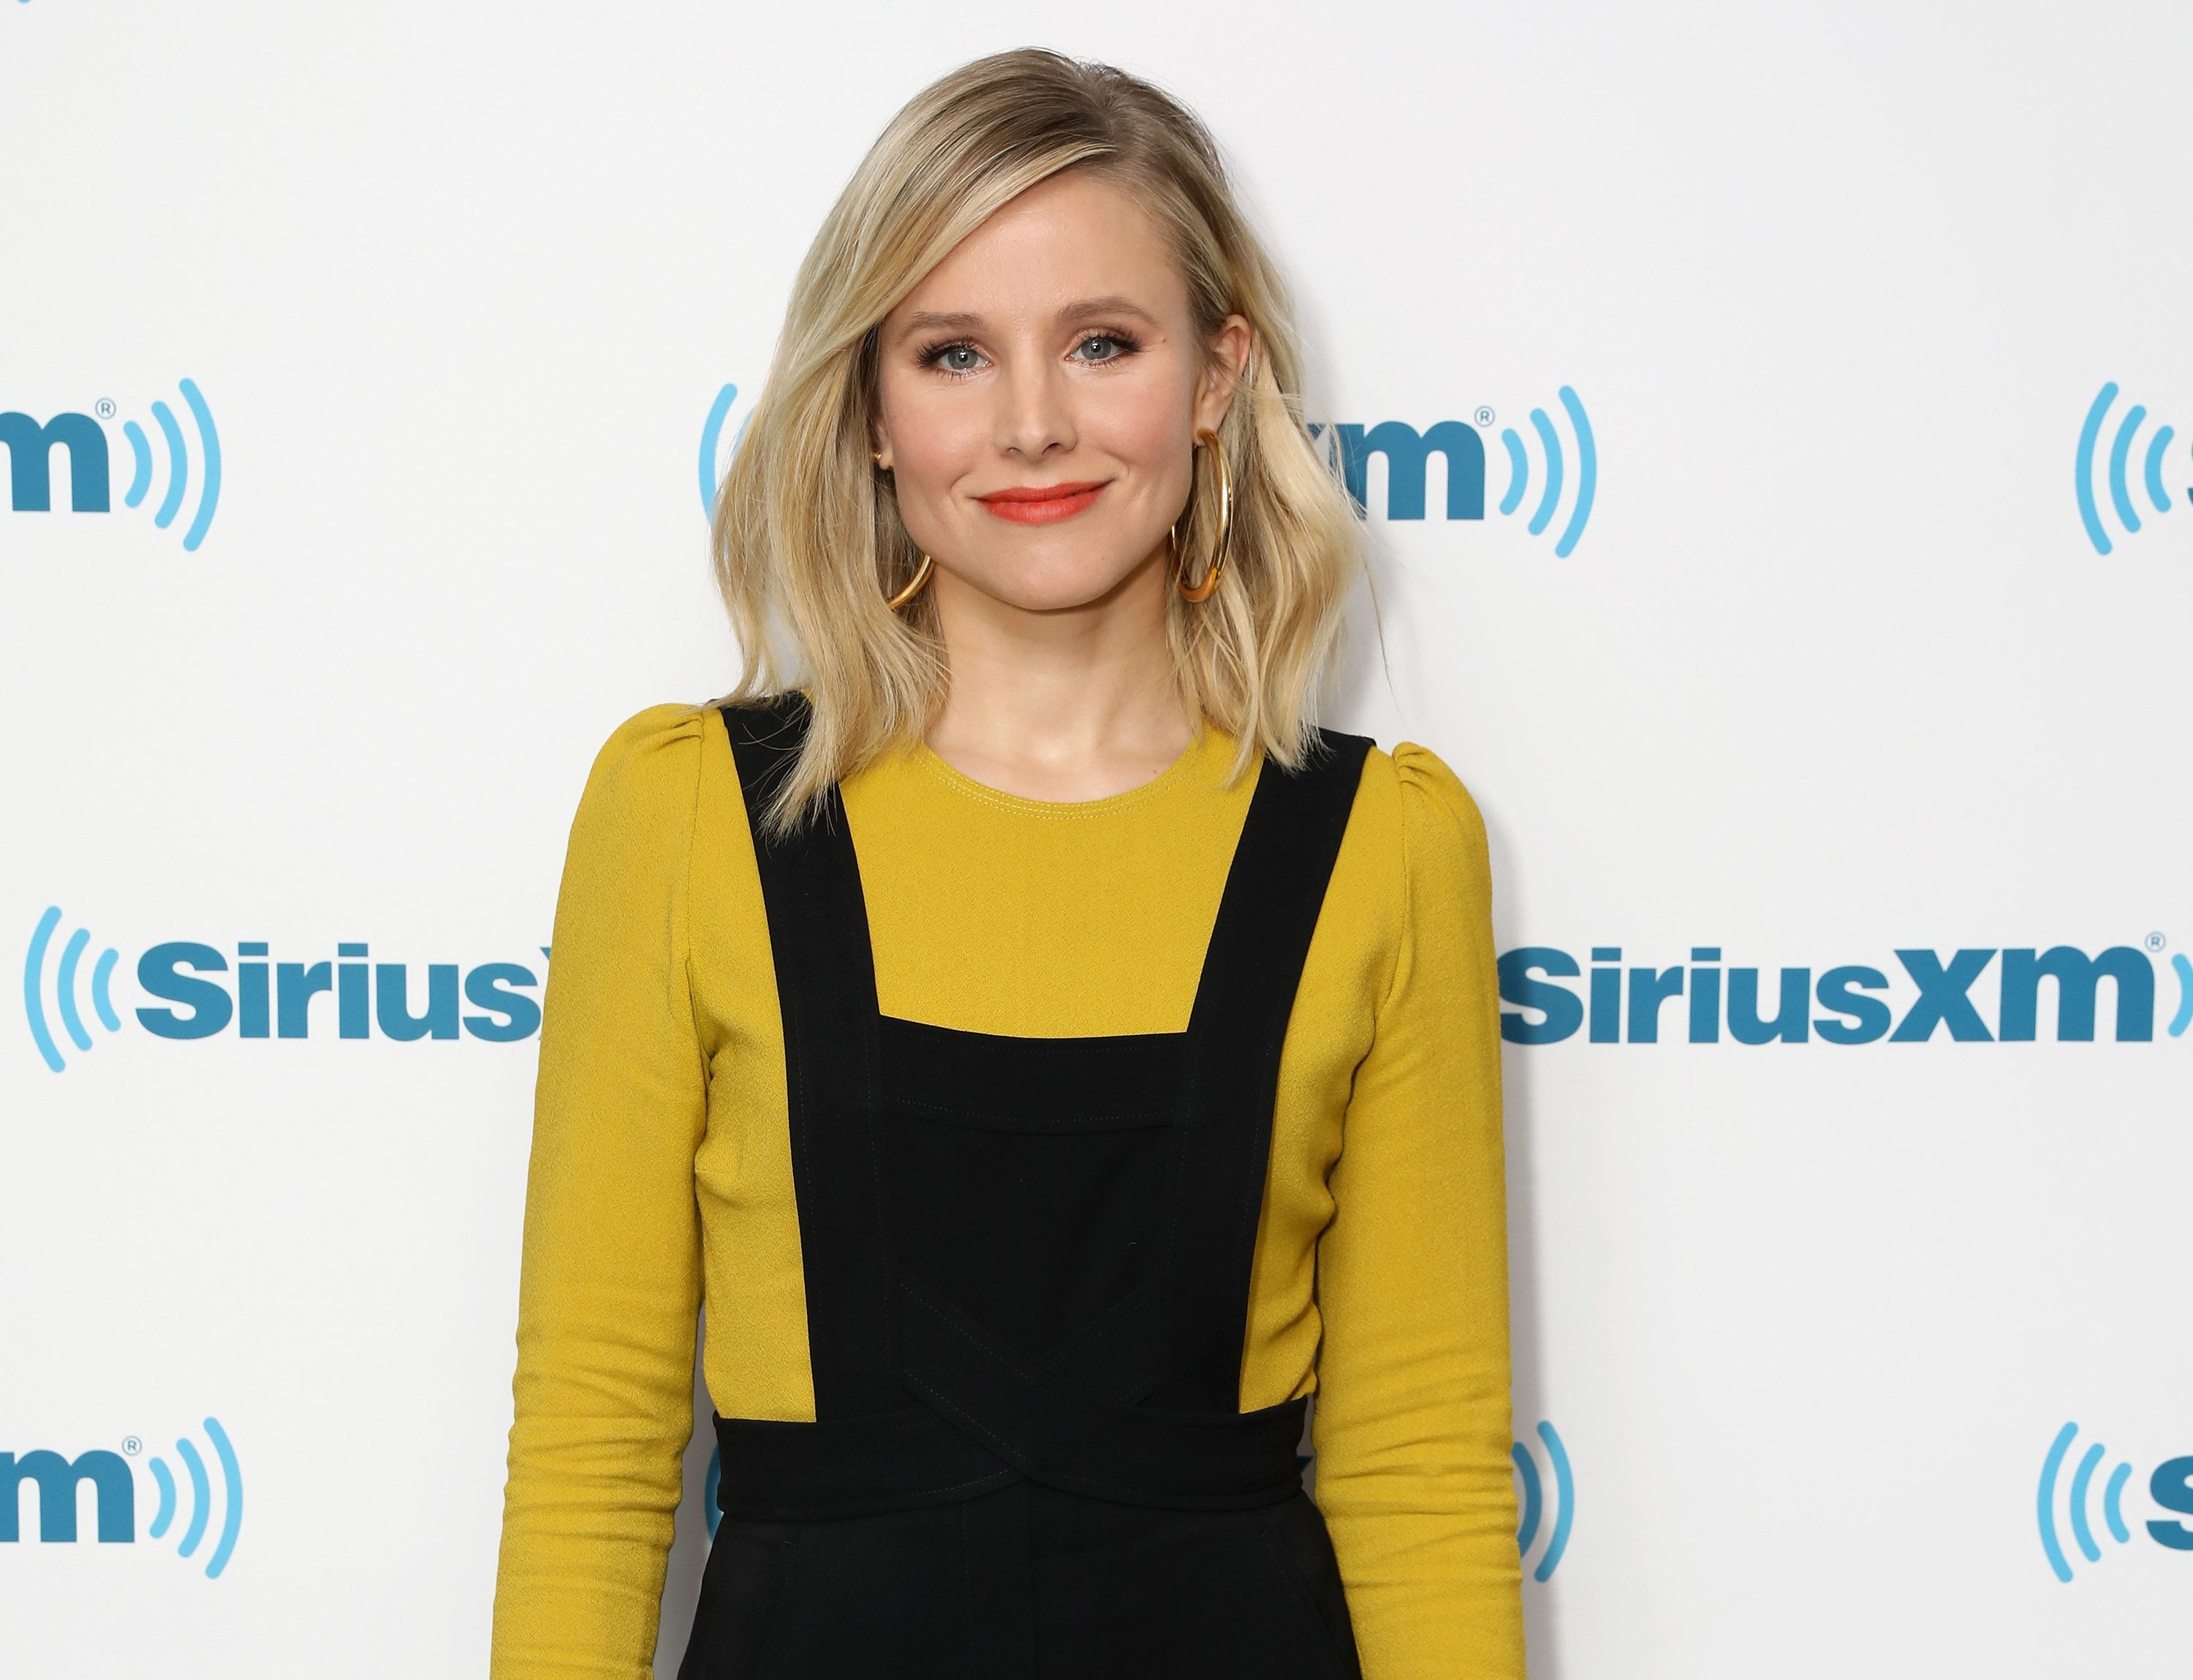 NEW YORK, NY - MARCH 22:  Actress Kristen Bell visits the SiriusXM Studios on March 22, 2017 in New York City.  (Photo by Cindy Ord/Getty Images)